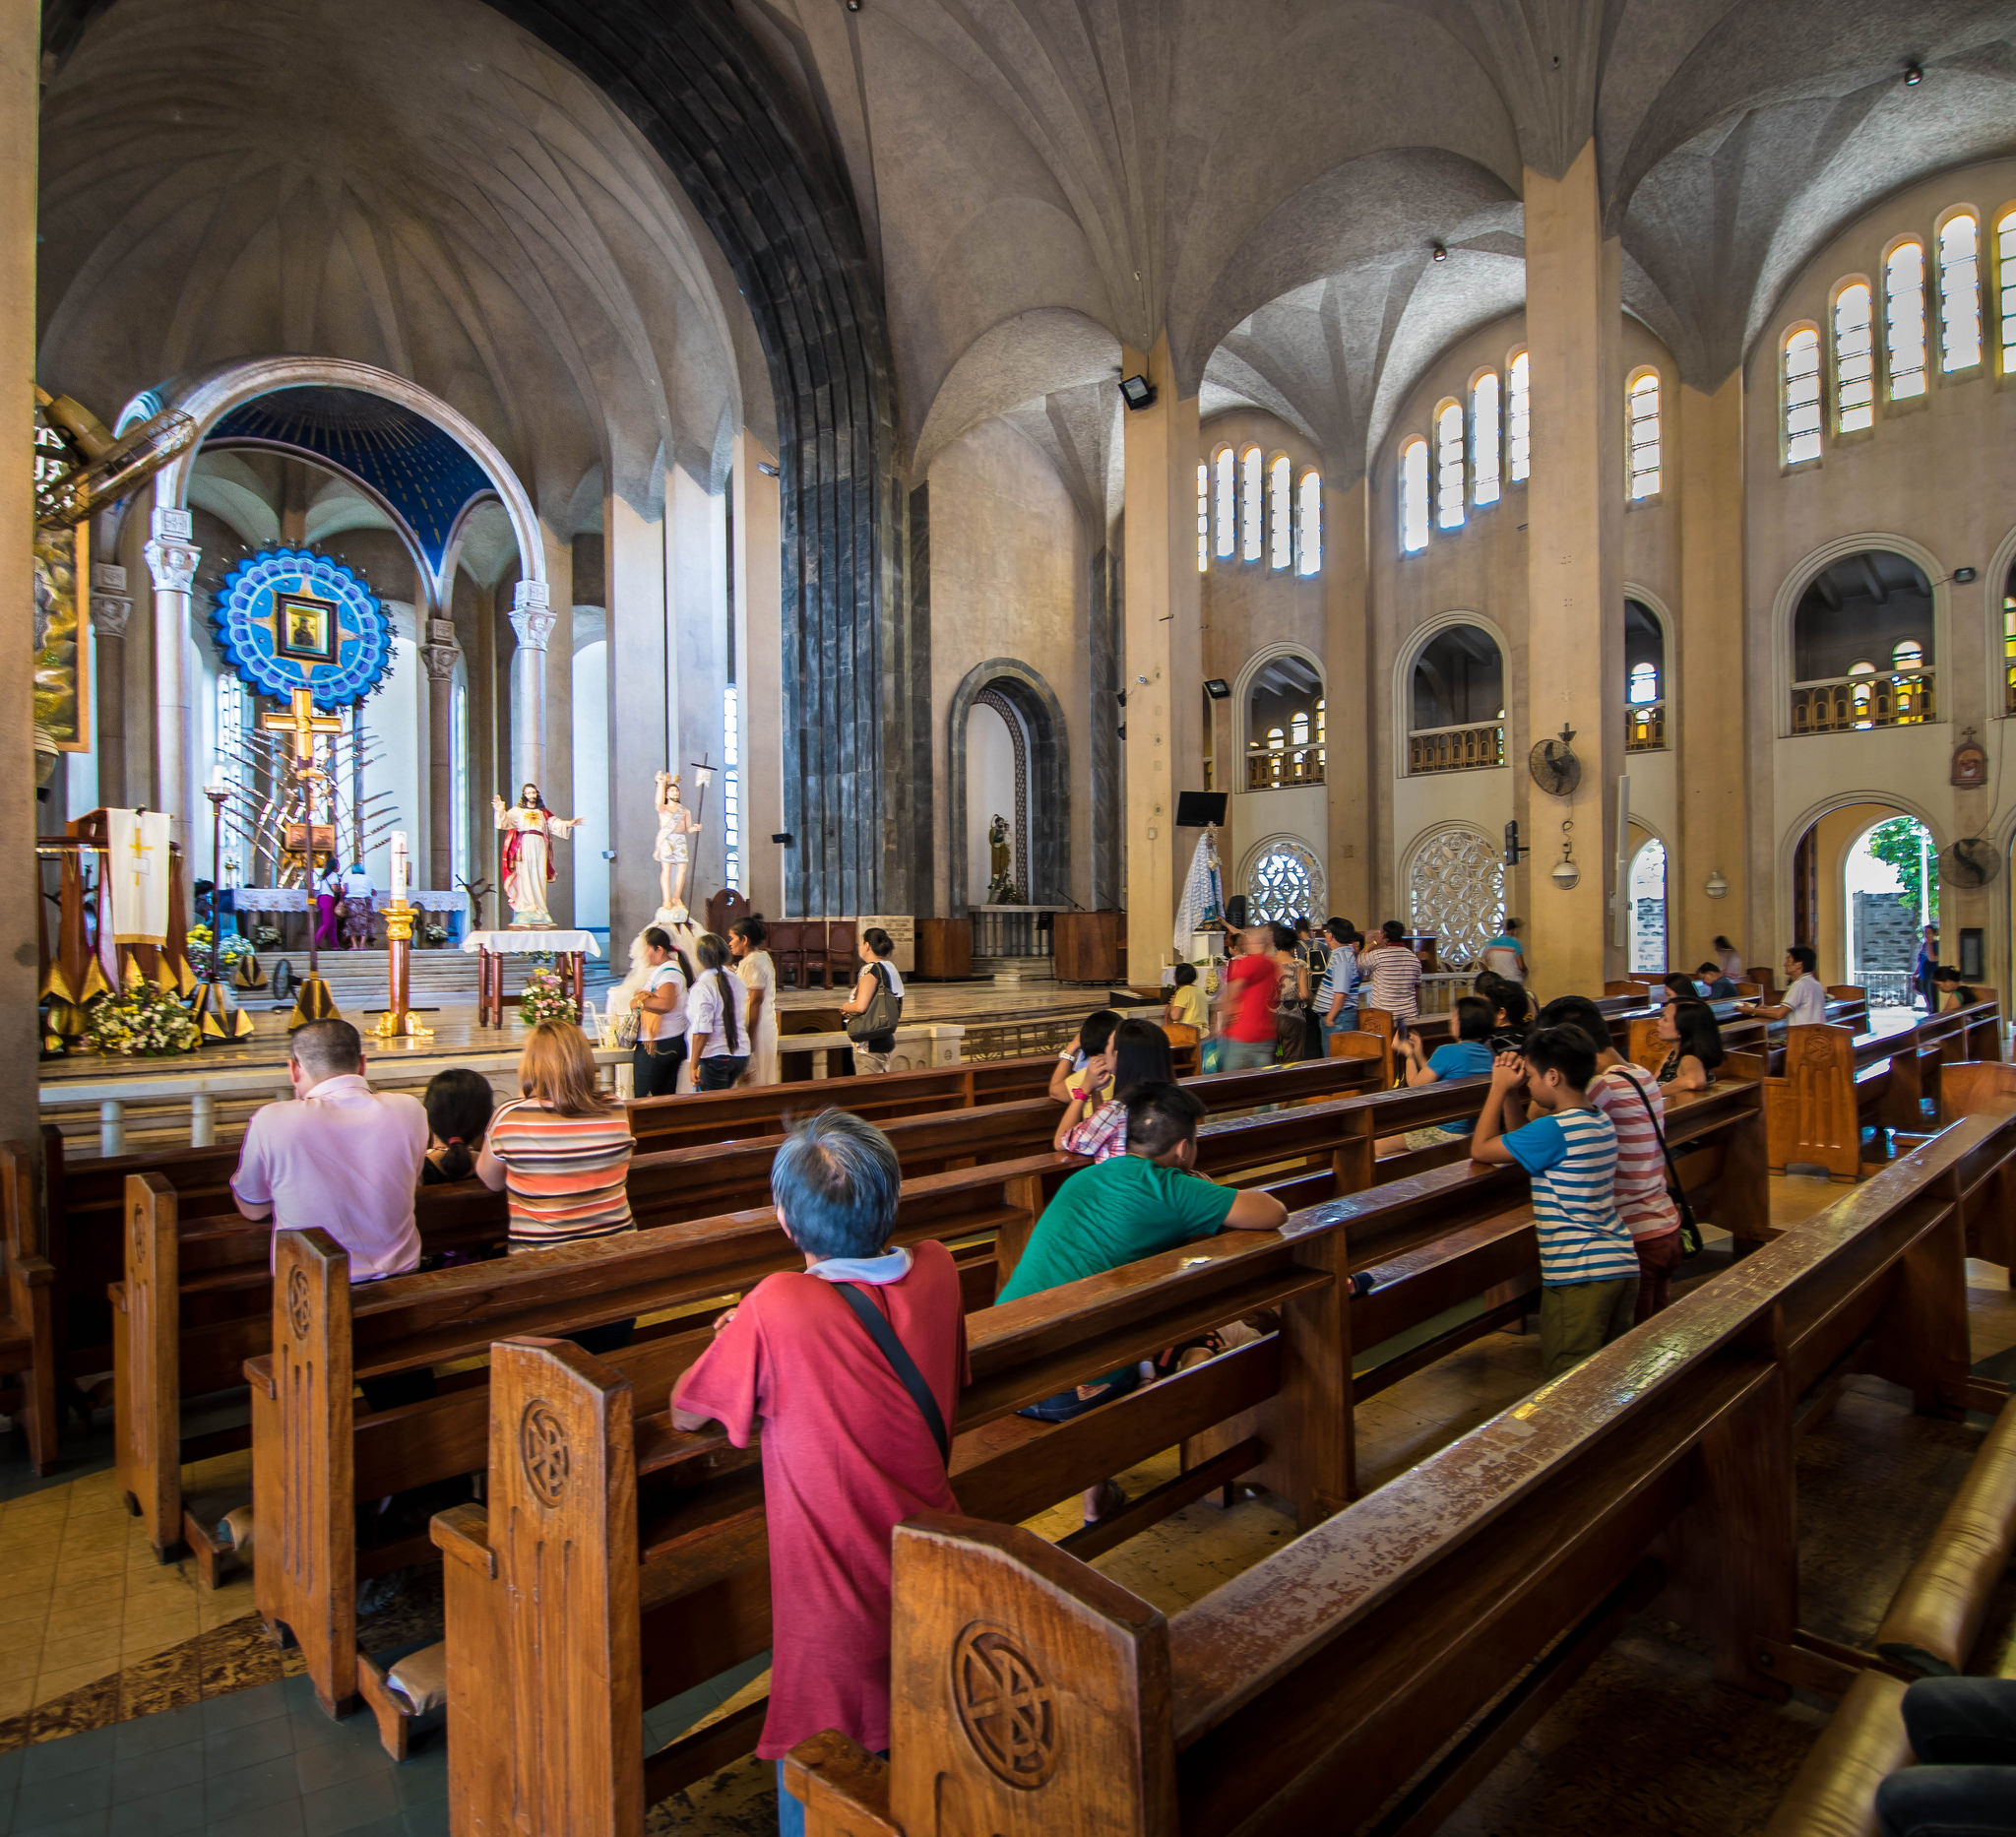 Does Religious Participation Contribute to Human Flourishing?